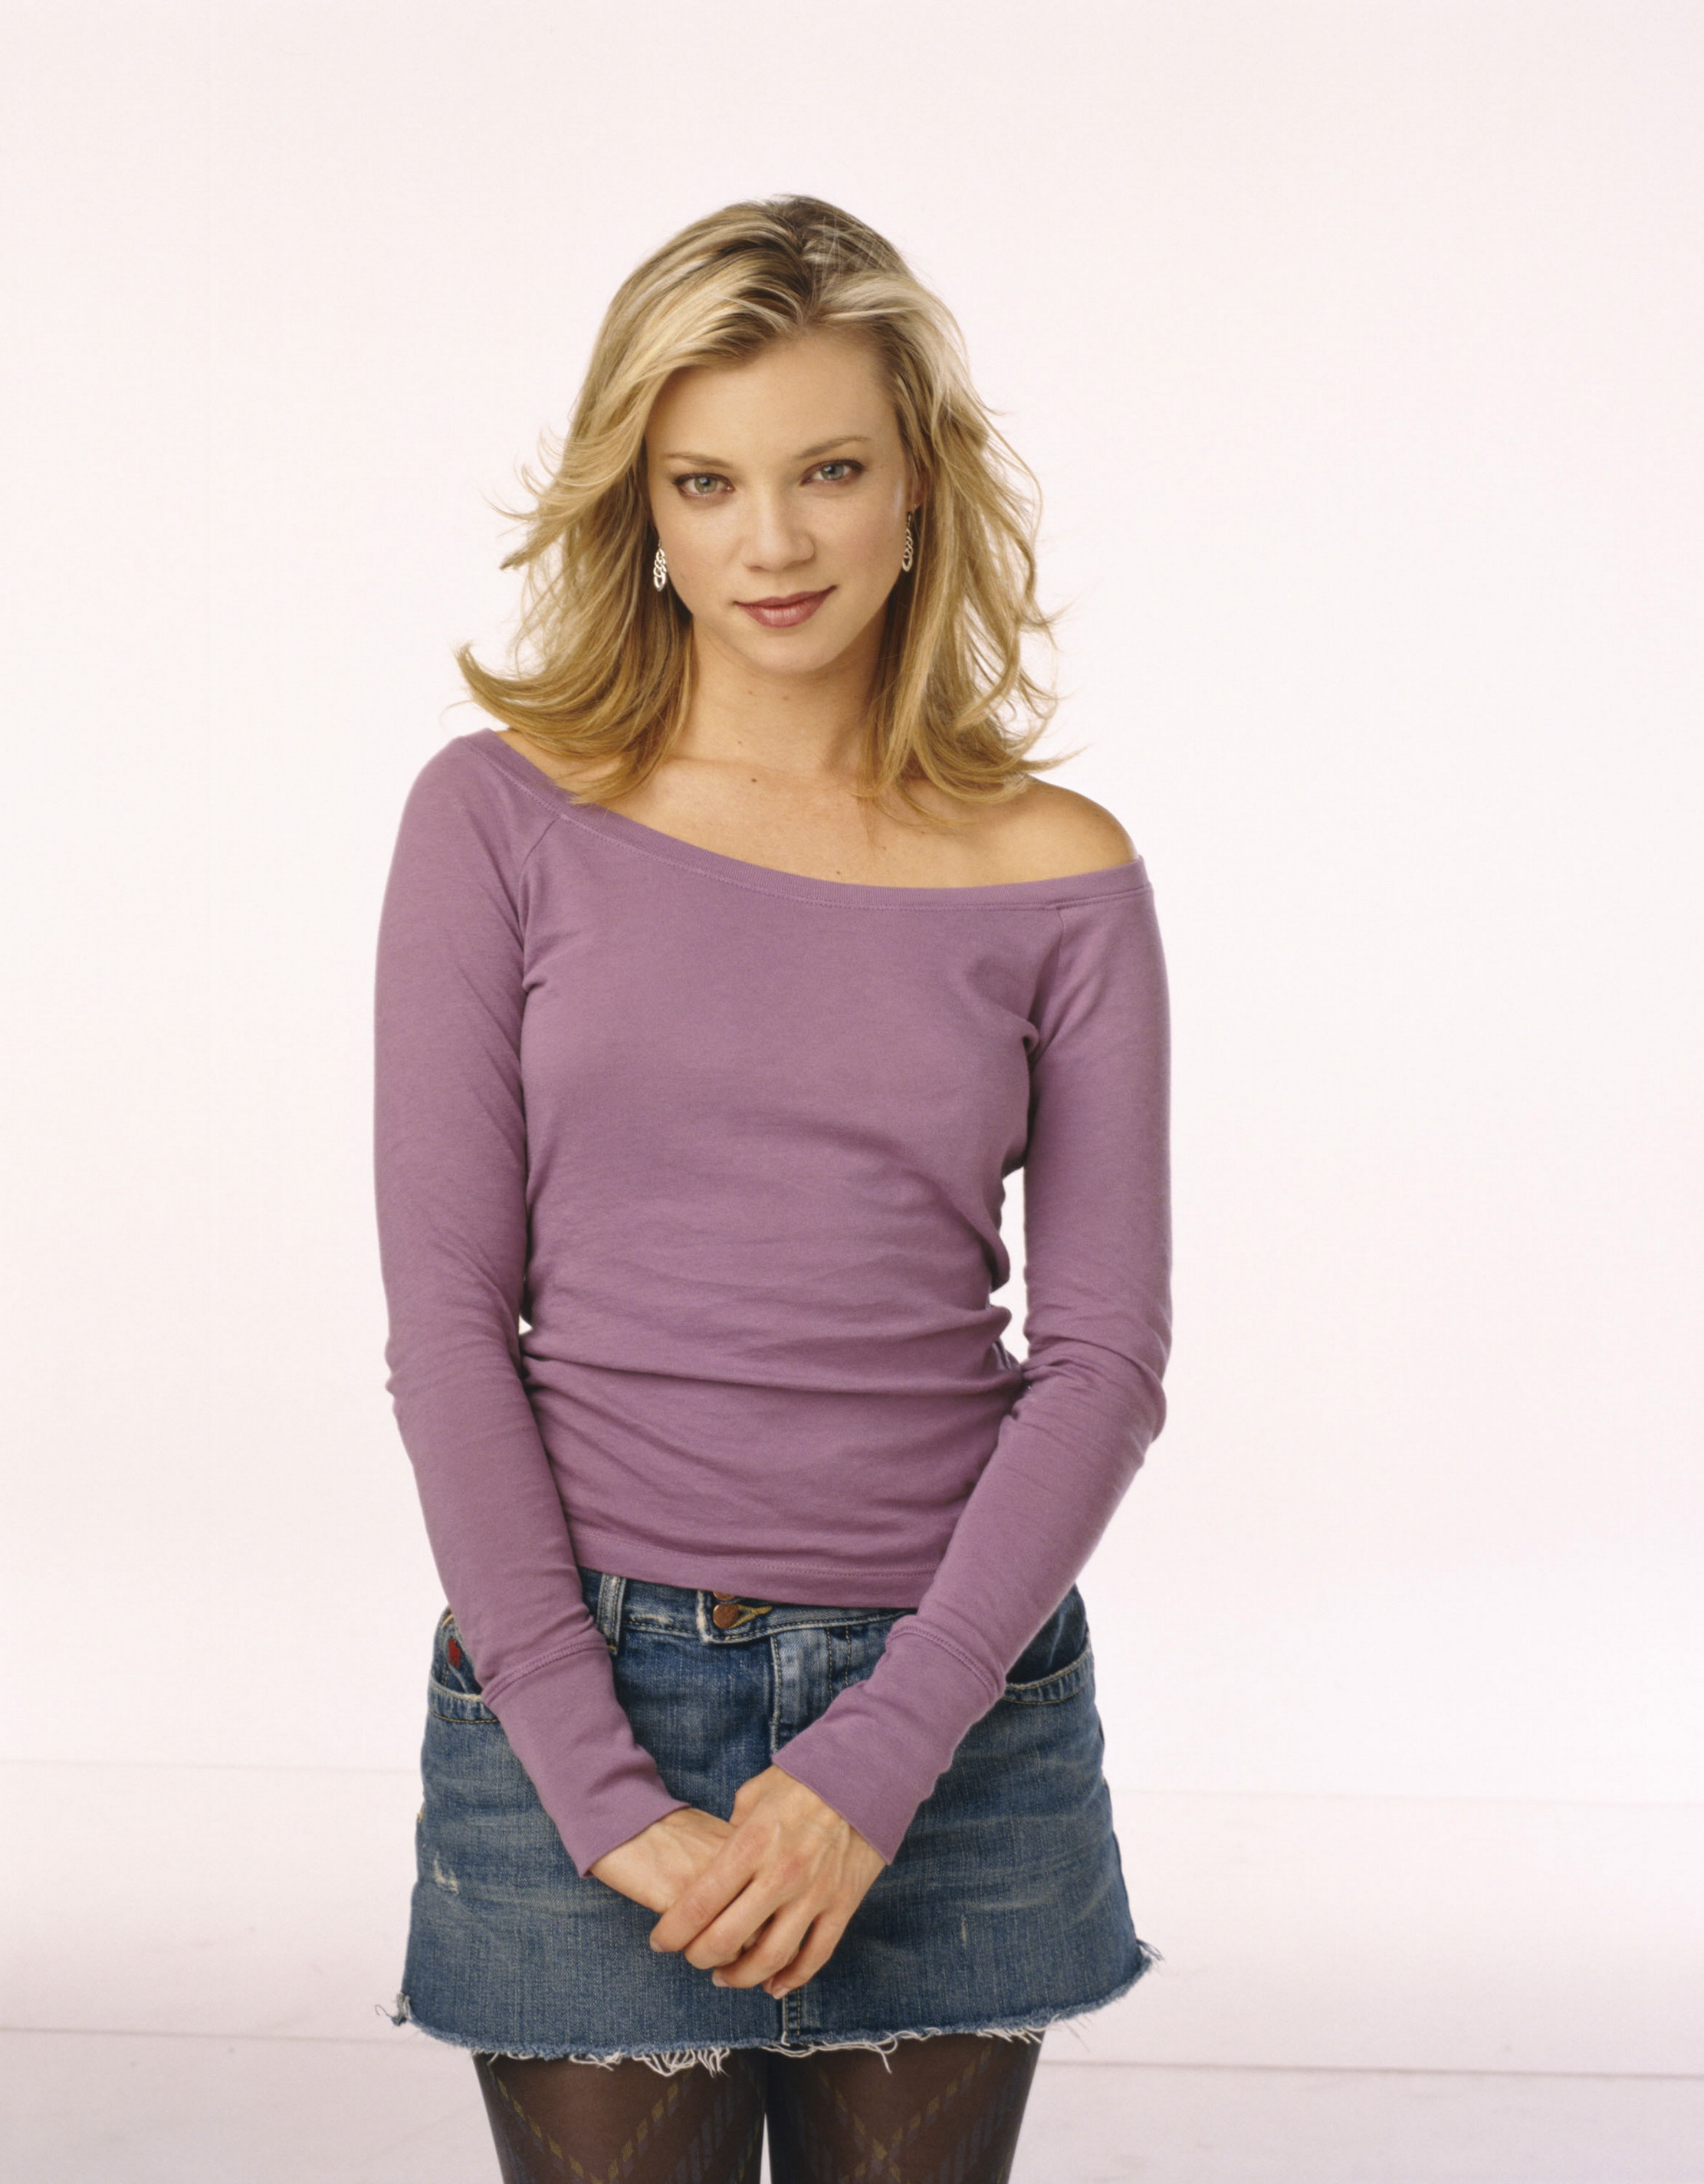 Amy Smart Hot Images amy smart photo 27 of 294 pics, wallpaper - photo #81775